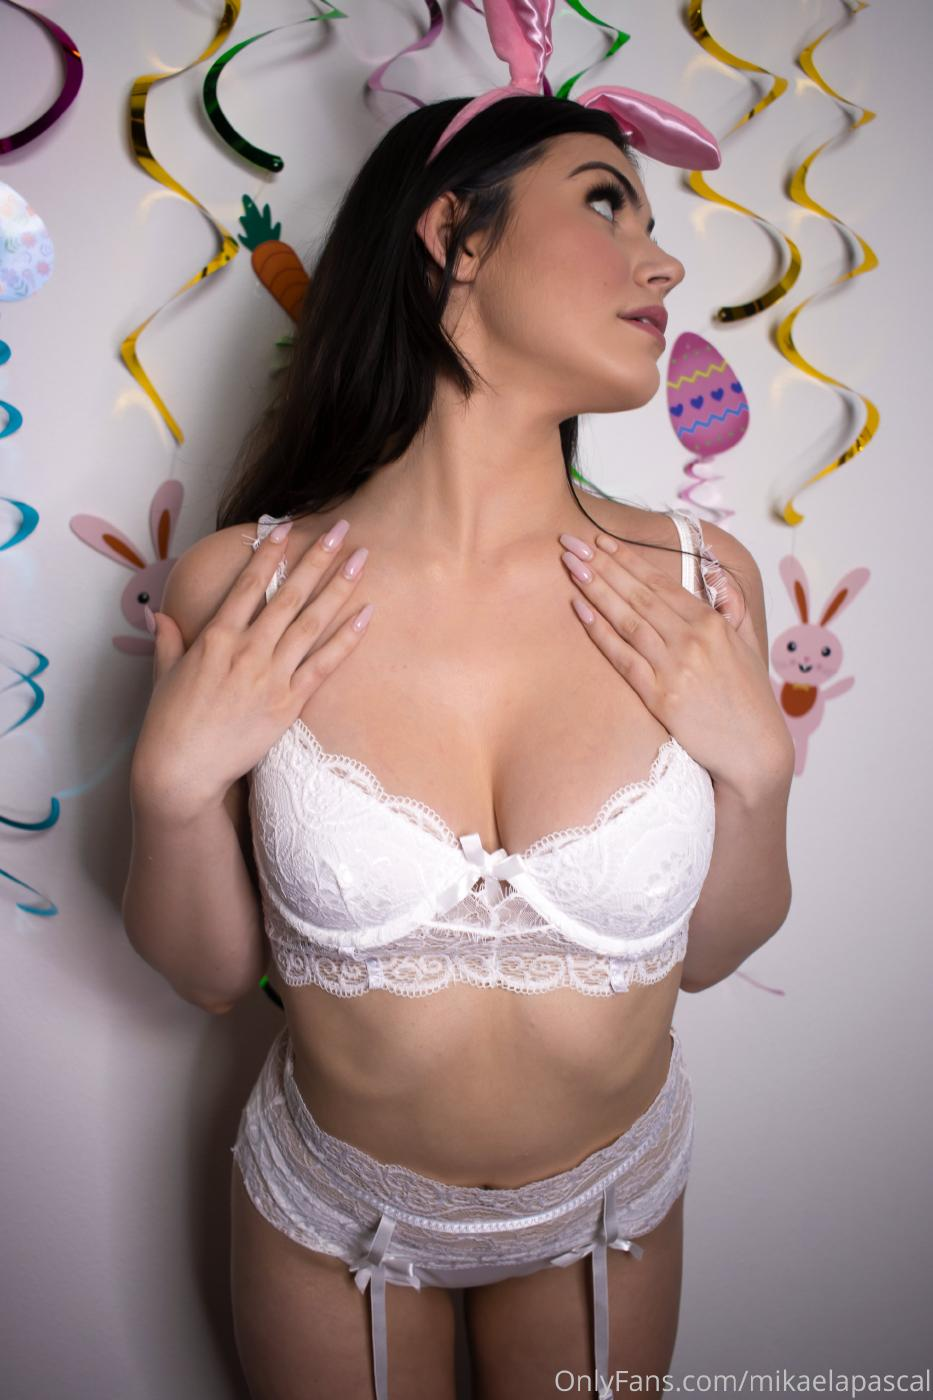 Mikaela Pascal Onlyfans April Extras Leaked 0008